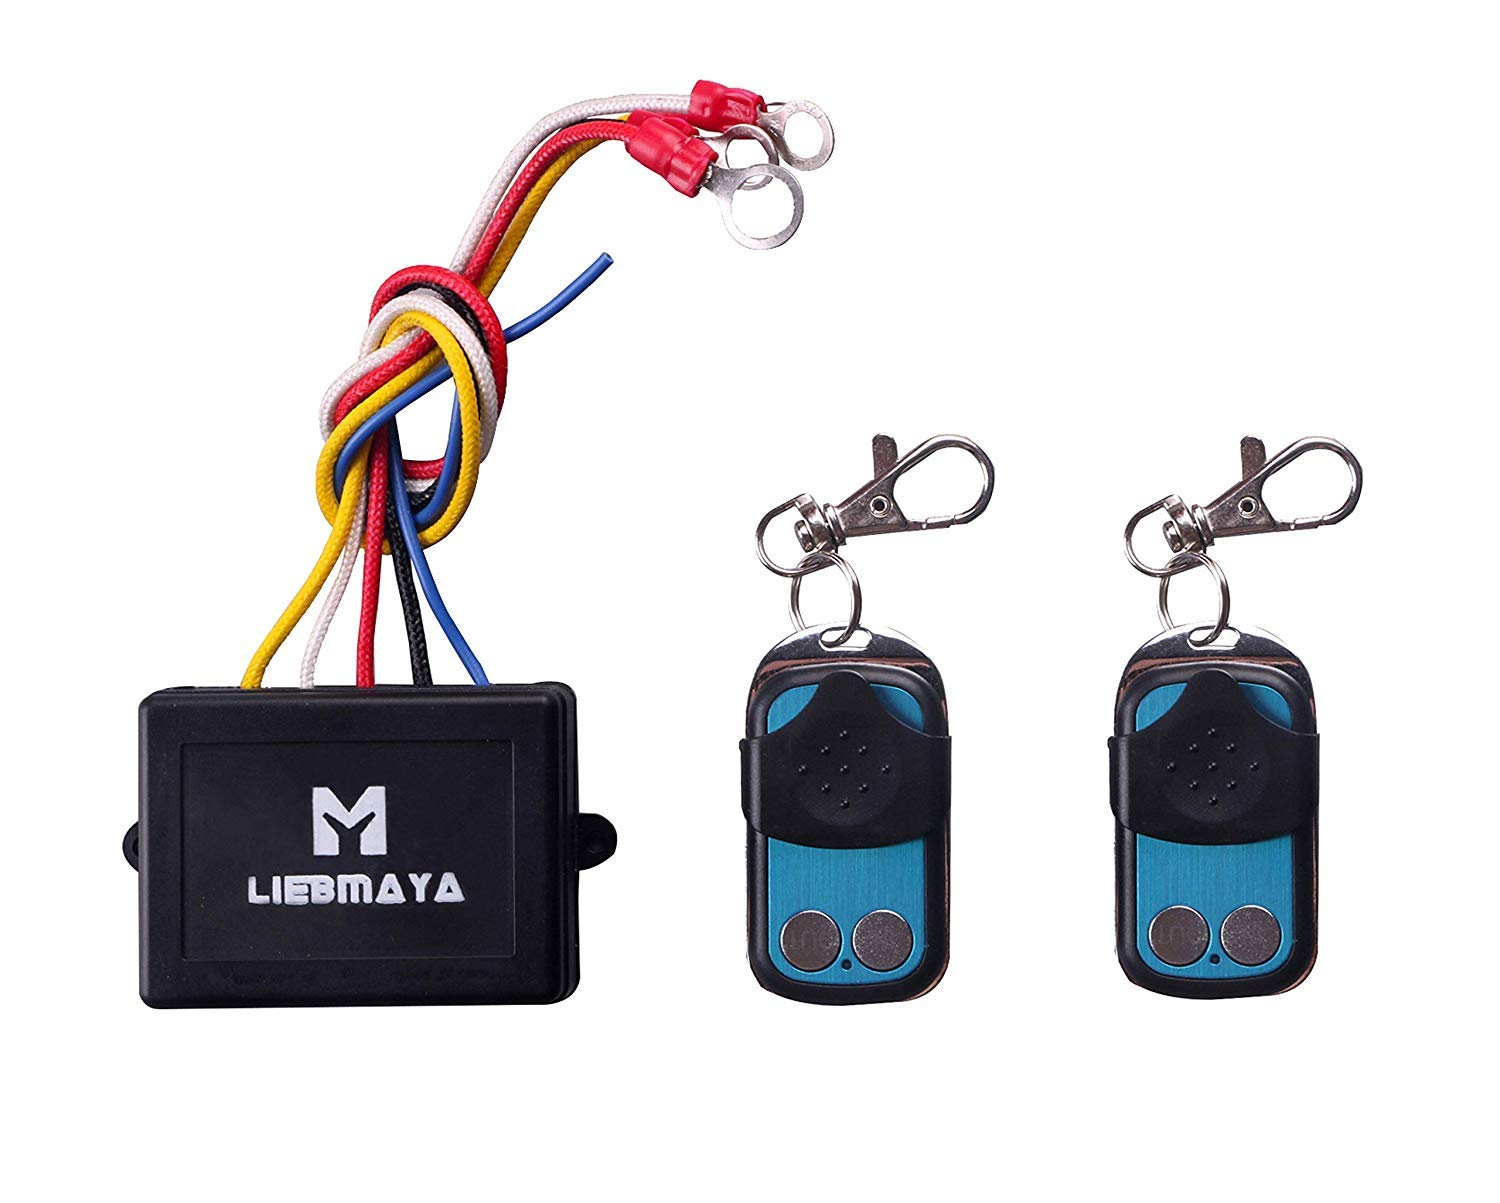 LIEBMAYA Wireless Winch Remote Control Kit for Truck Jeep ATV SUV 12V Switch Handset - with Two Keychain remotes by LIEBMAYA